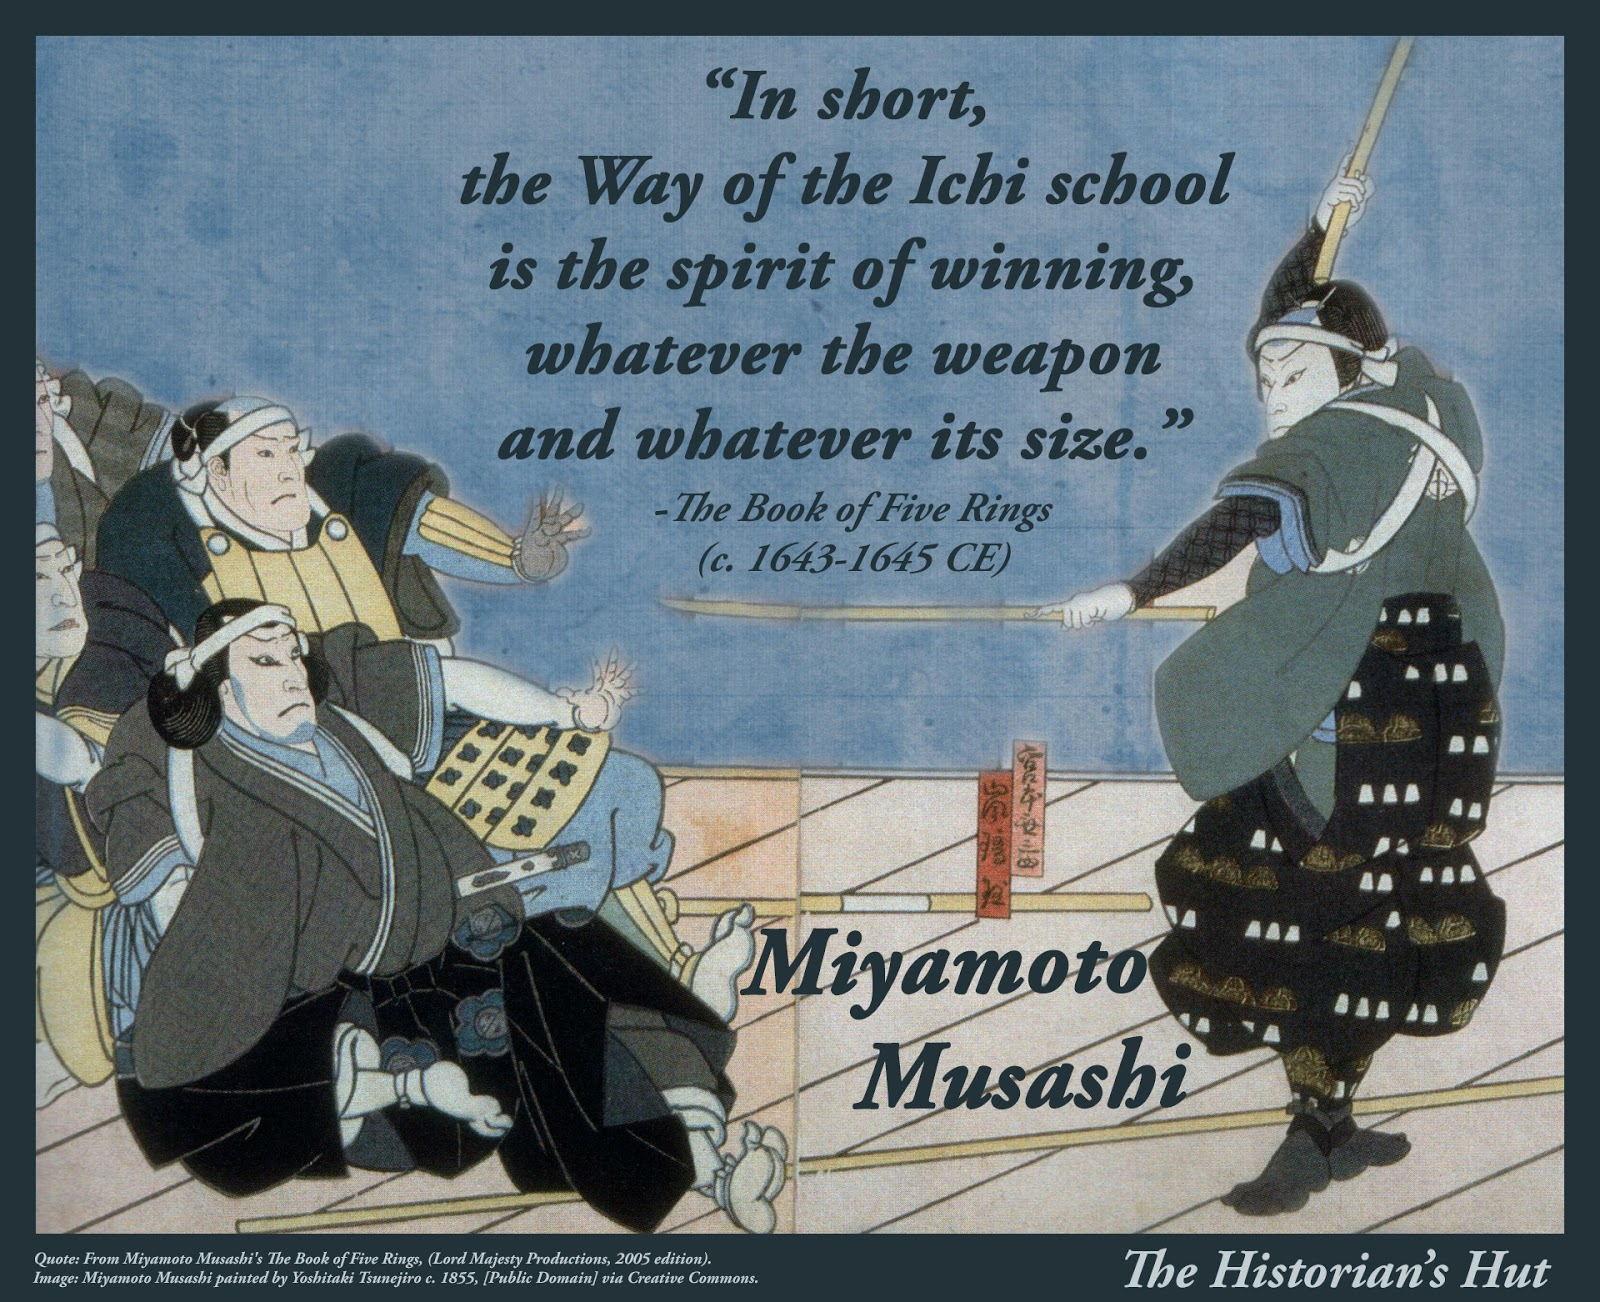 The Historians Hut Quote Pictures Miyamoto Musashi